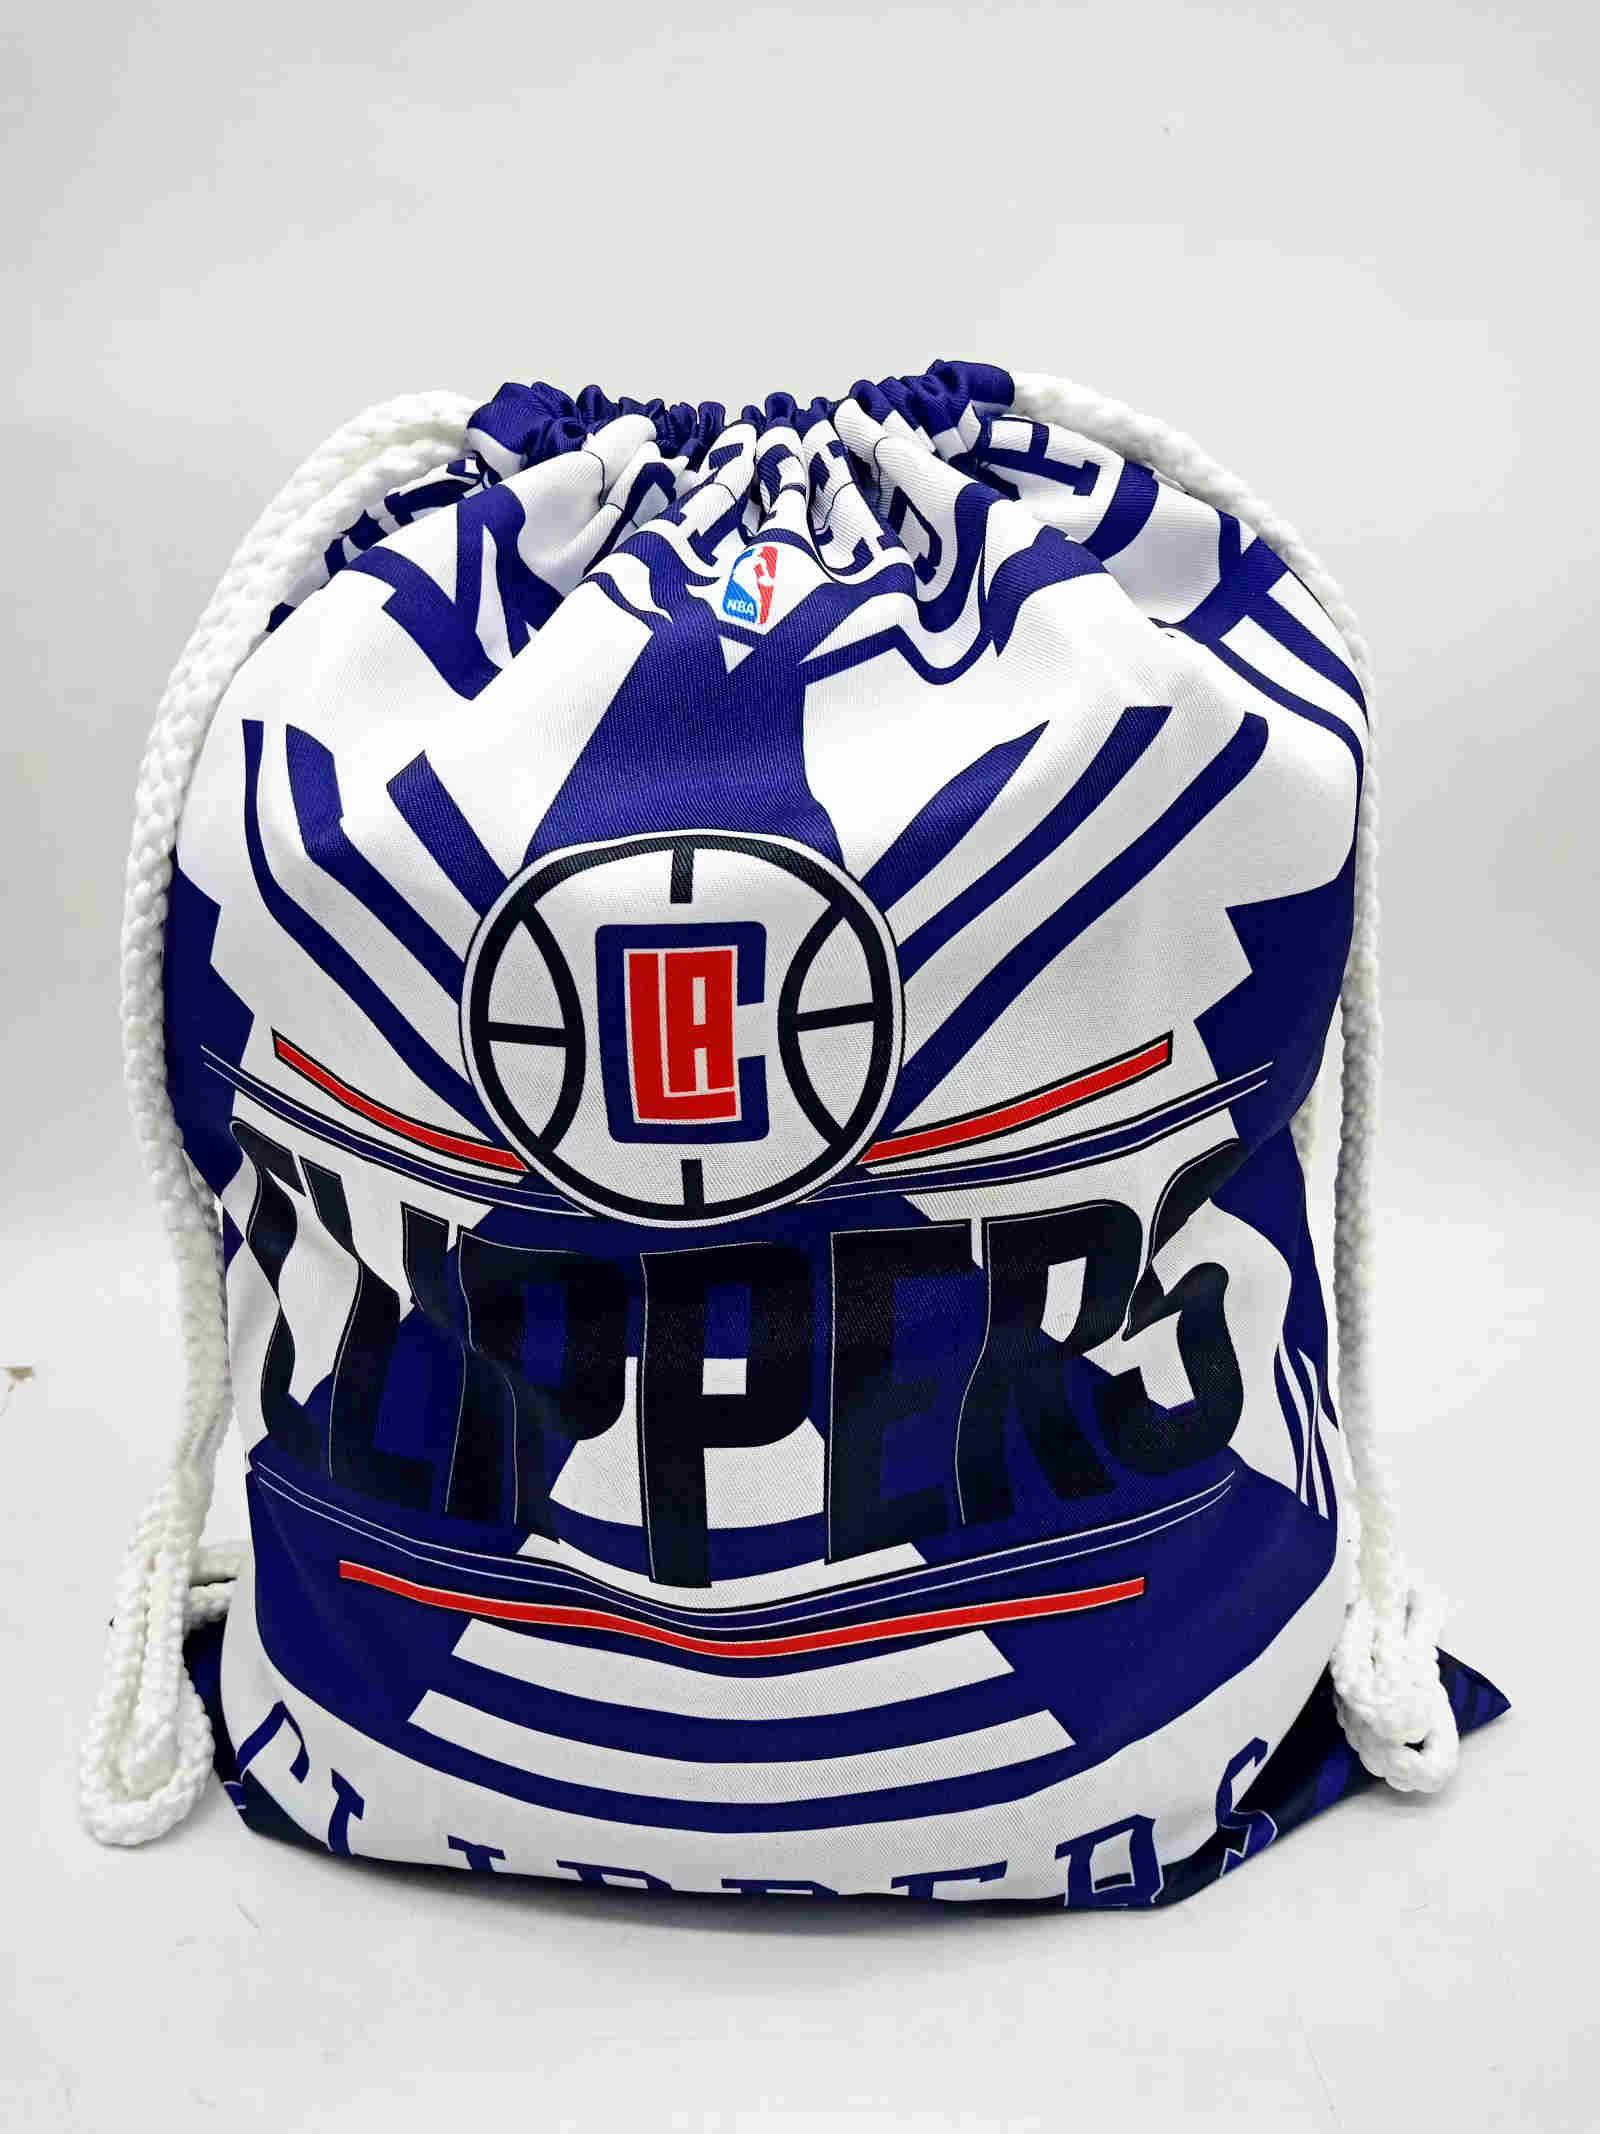 Fans basketball Soccer Shoes Drawstring Outdoor Bags Football training Design Storage Backpack Canvas School Bag Toys Received,Beach Bag